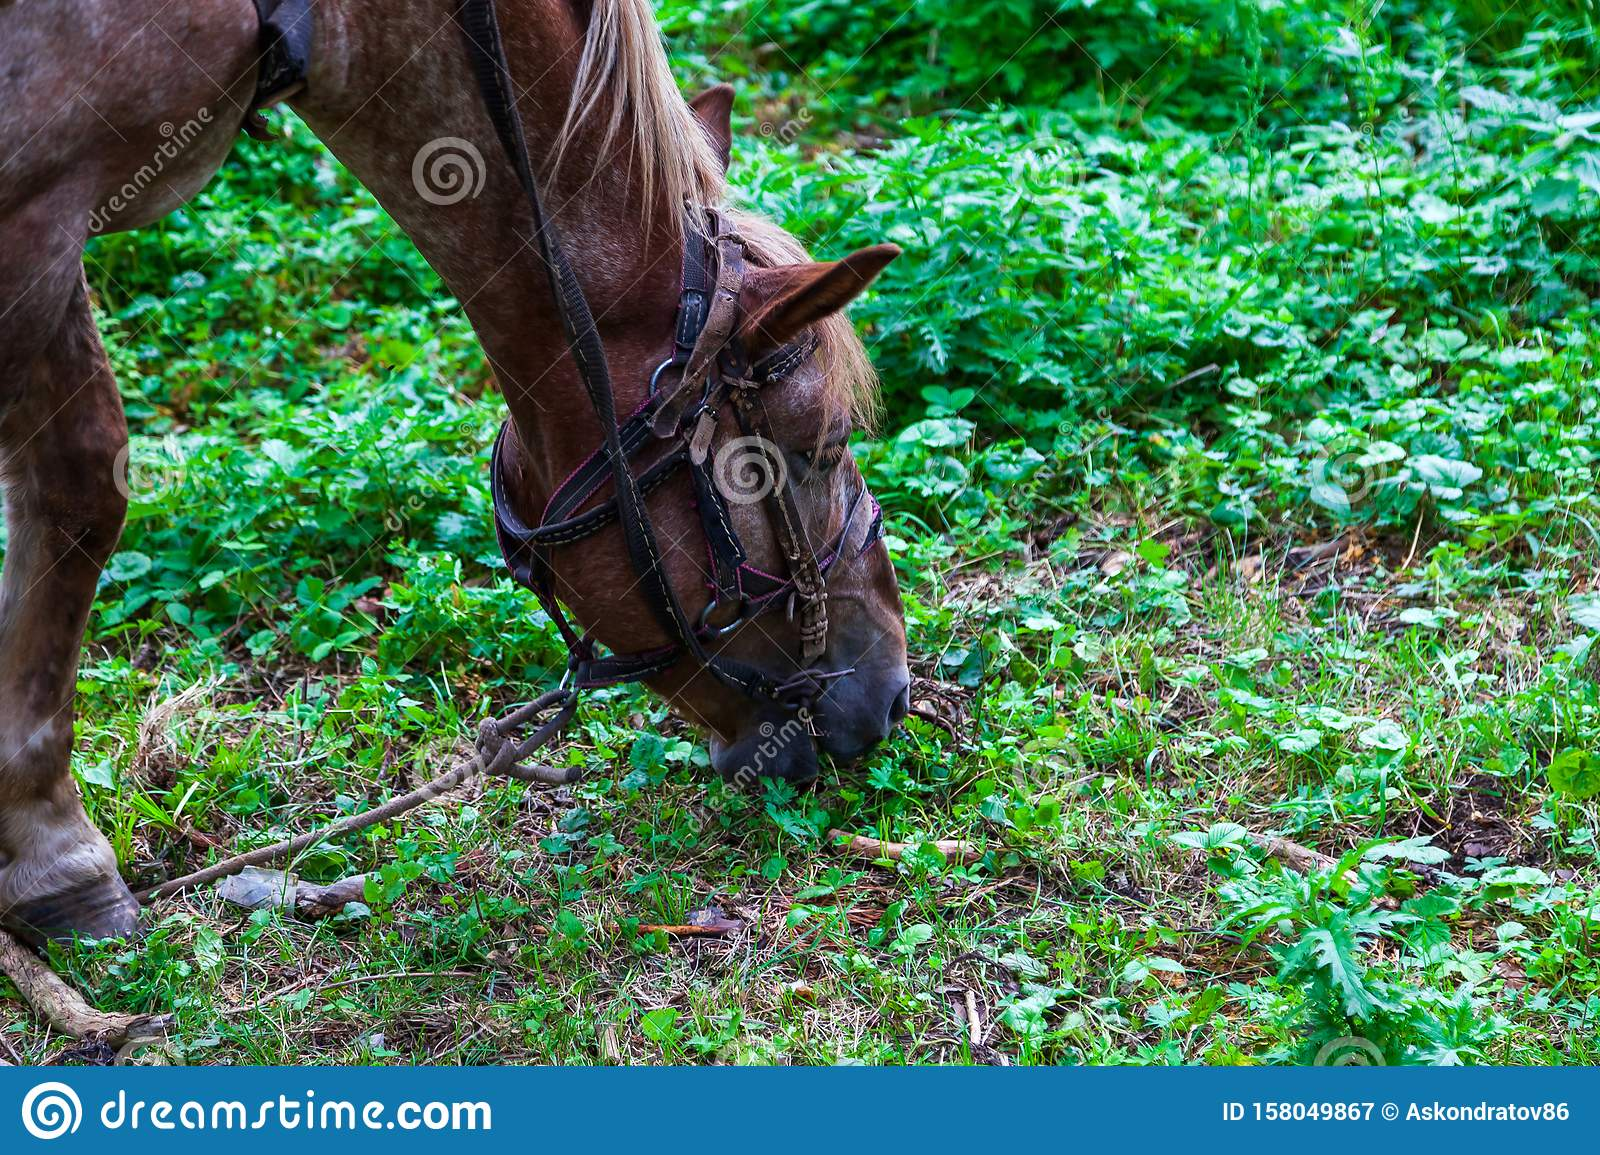 Close up on a head of a arabian horse with a saddle on his back bowed his head and eats green grass in the forest